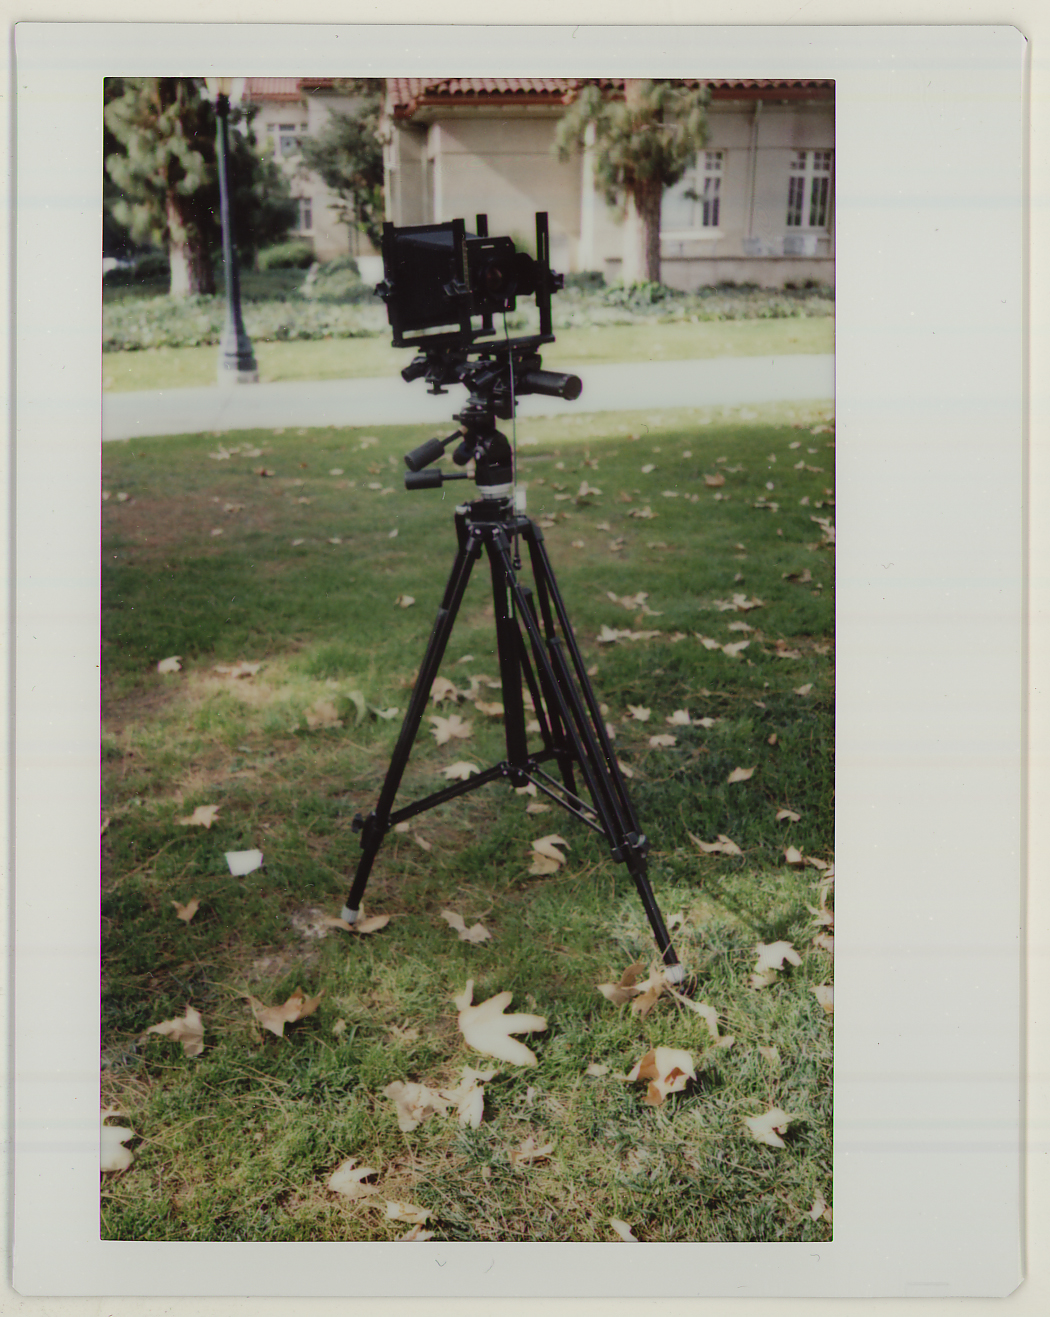 "January 28, 2015 - There are six 4x5 camera kits. Besides this type, there are smaller 4x5 field cameras that we used as well. This was taken on one of the last days of ""Jan Term"" with my FujiFilm instax210."